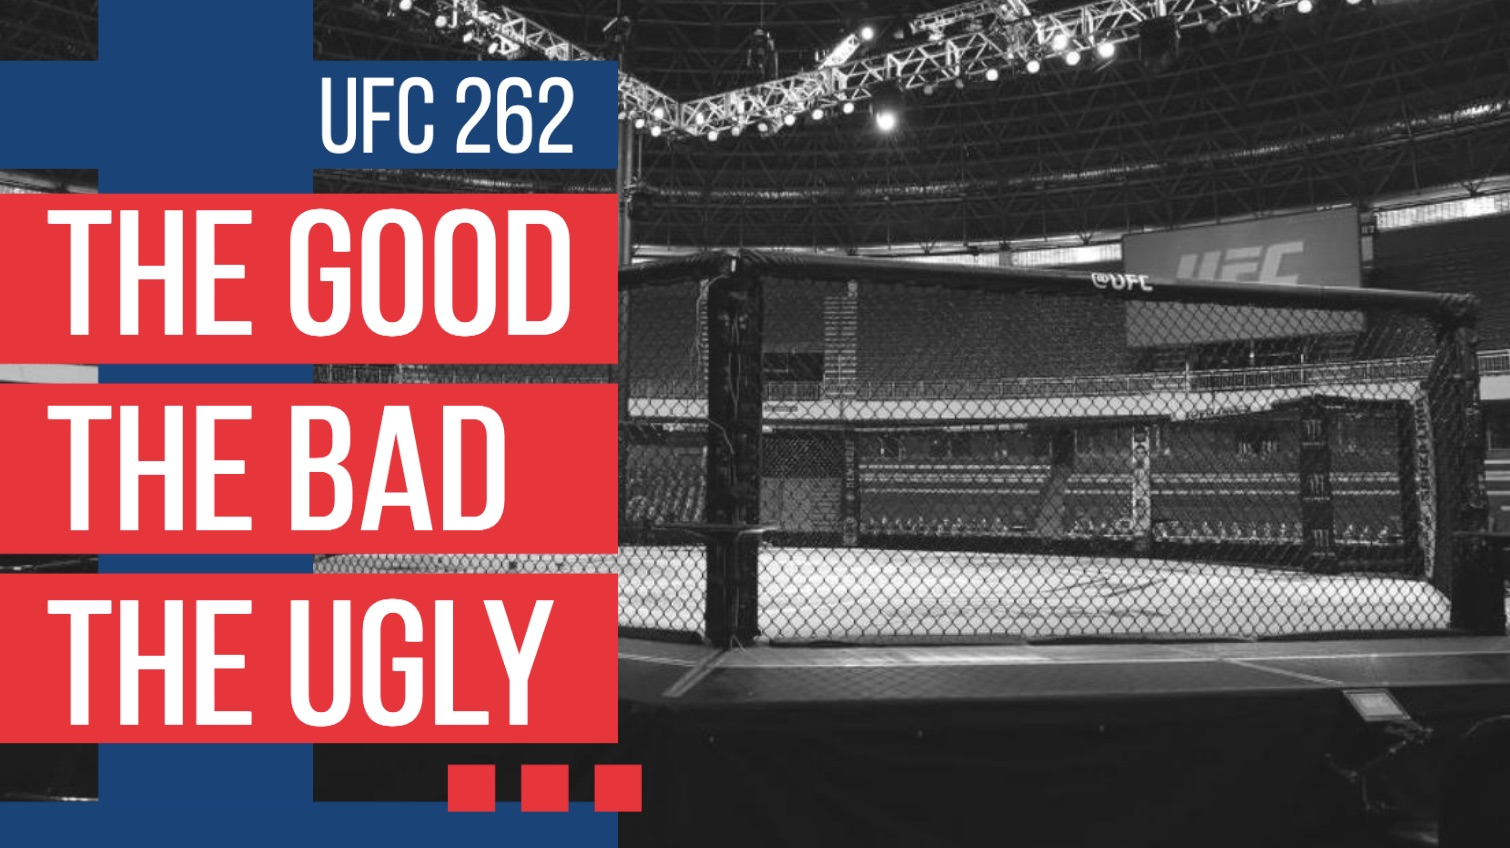 the good the bad the ugly ufc 262